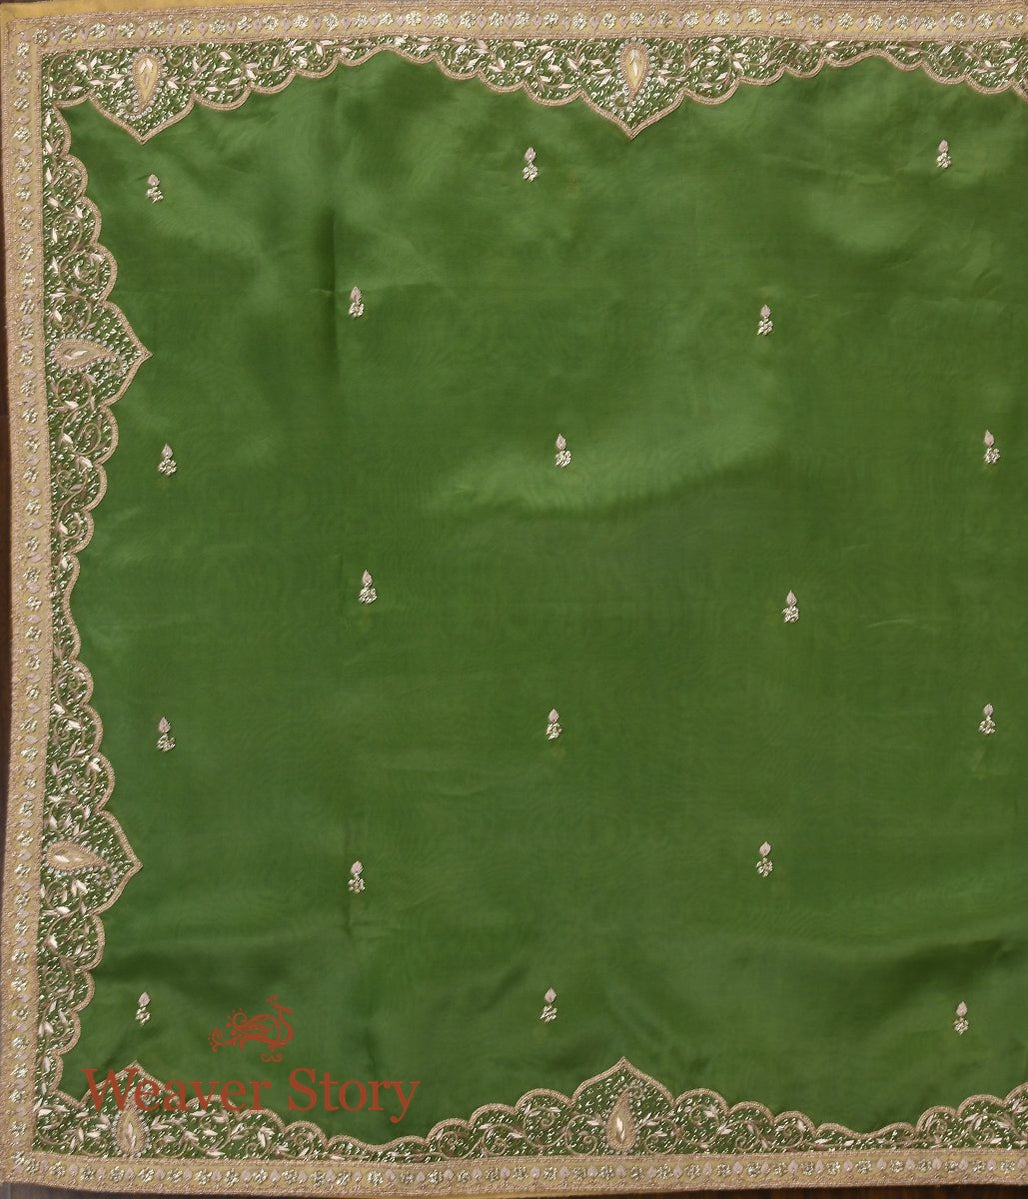 Heena Green Zardozi Dupatta with Mughal Border